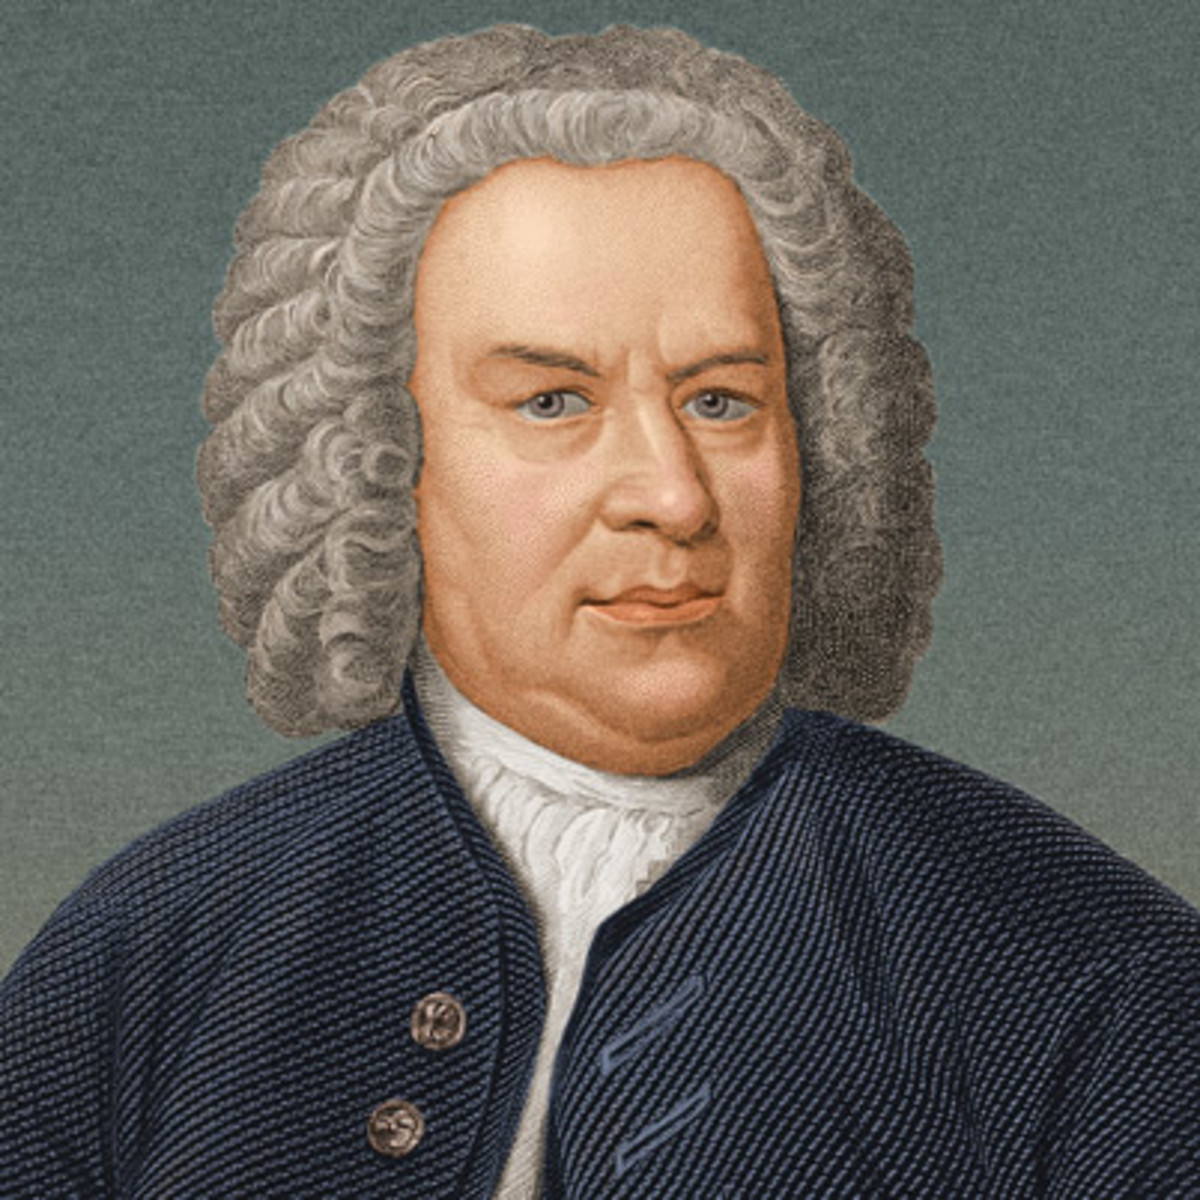 biography on johann sebastian bach essay